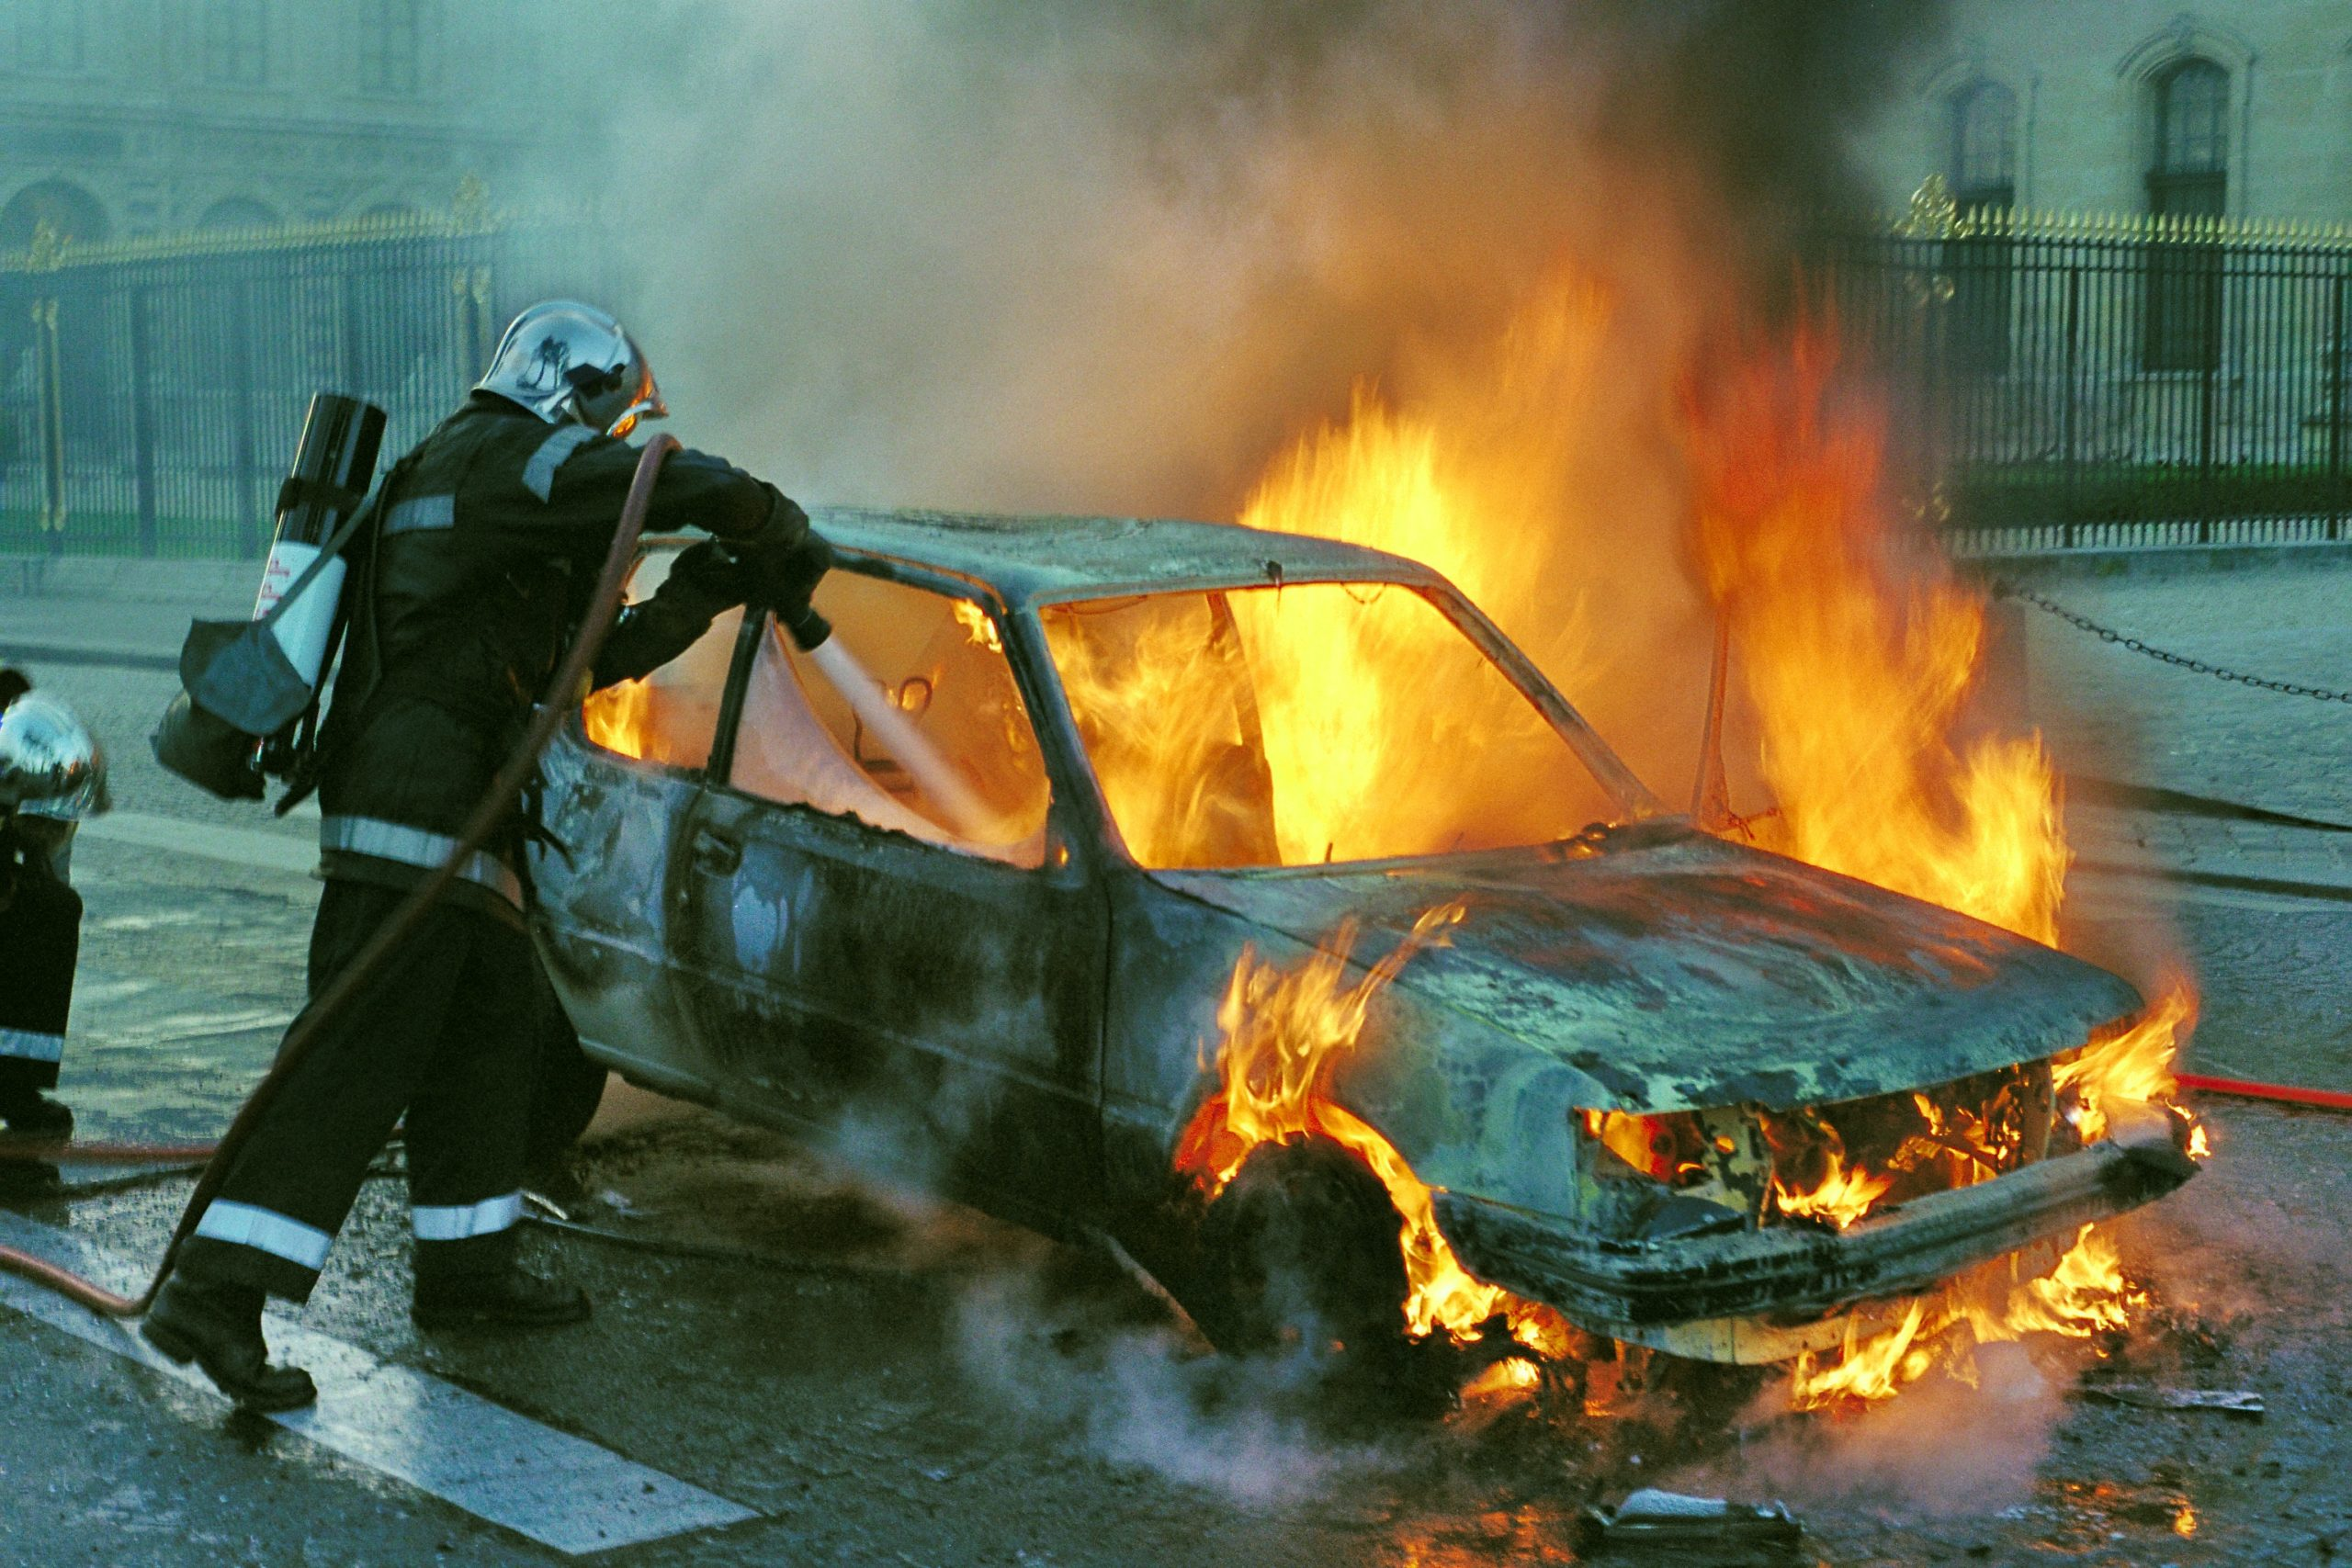 Firefighter putting out a burning car